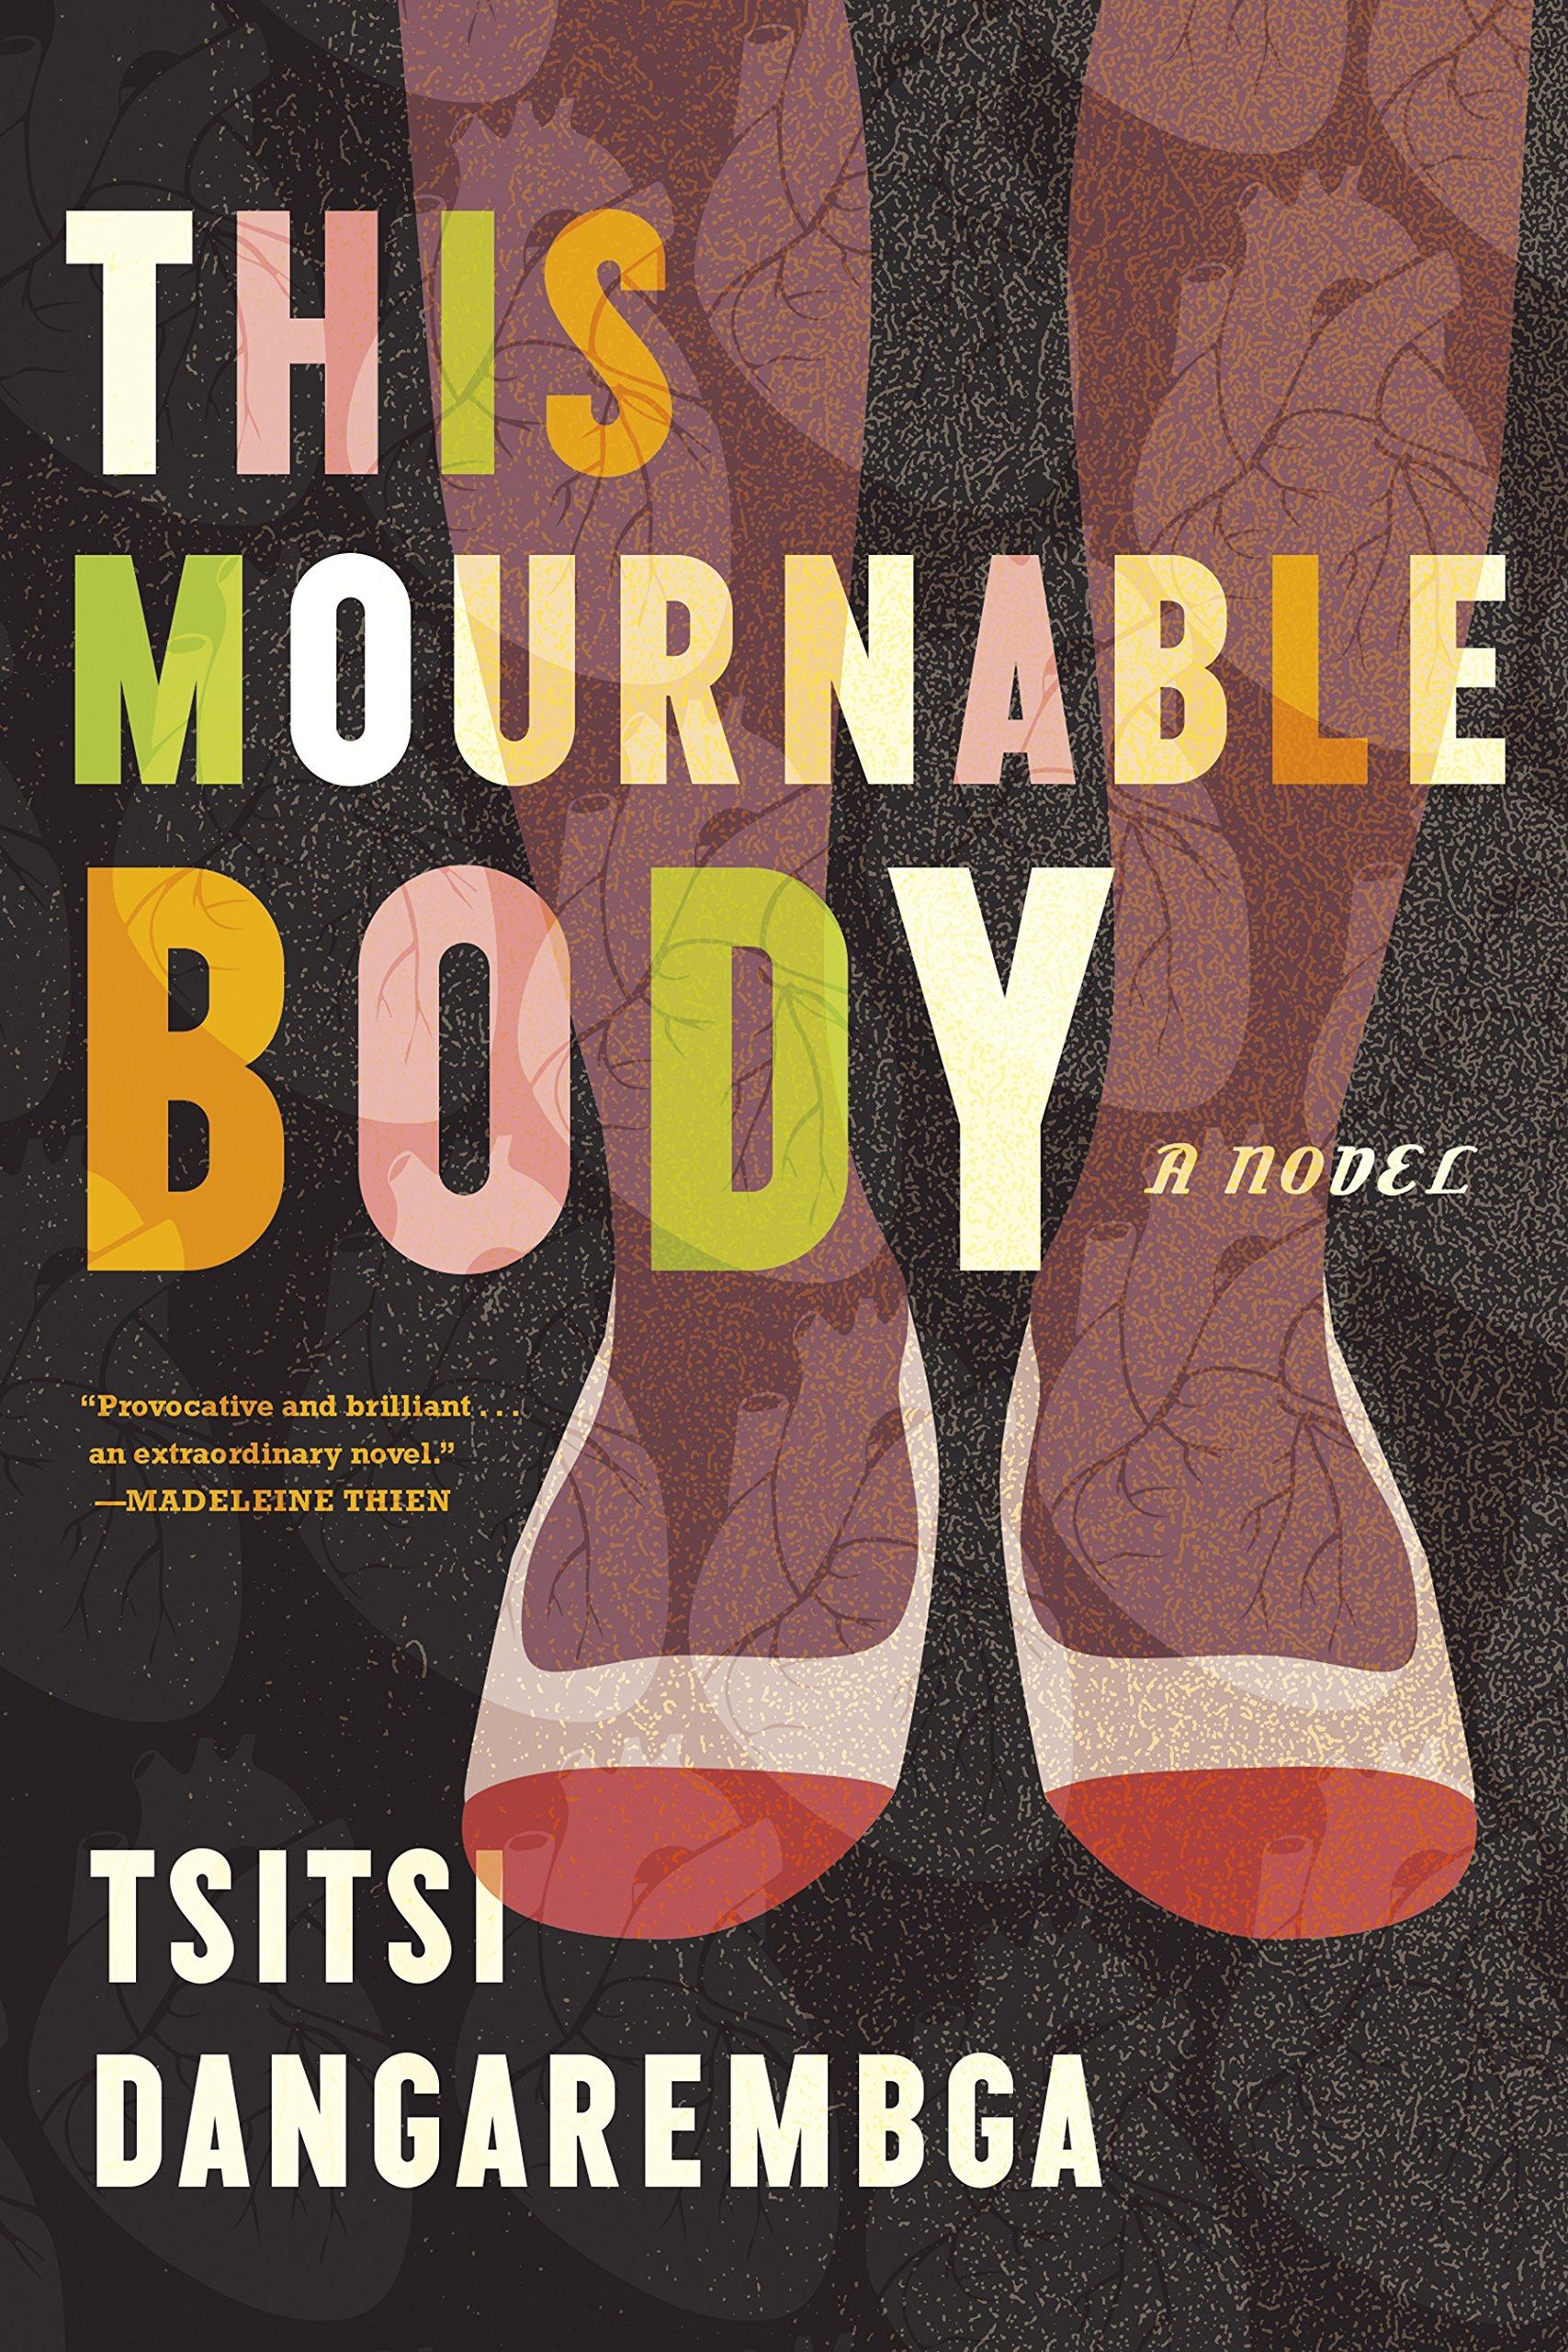 This Mournable Body: A Novel Paperback – August 7, 2018 Tsitsi Dangarembga Graywolf Press 1555978126 Cultural Heritage